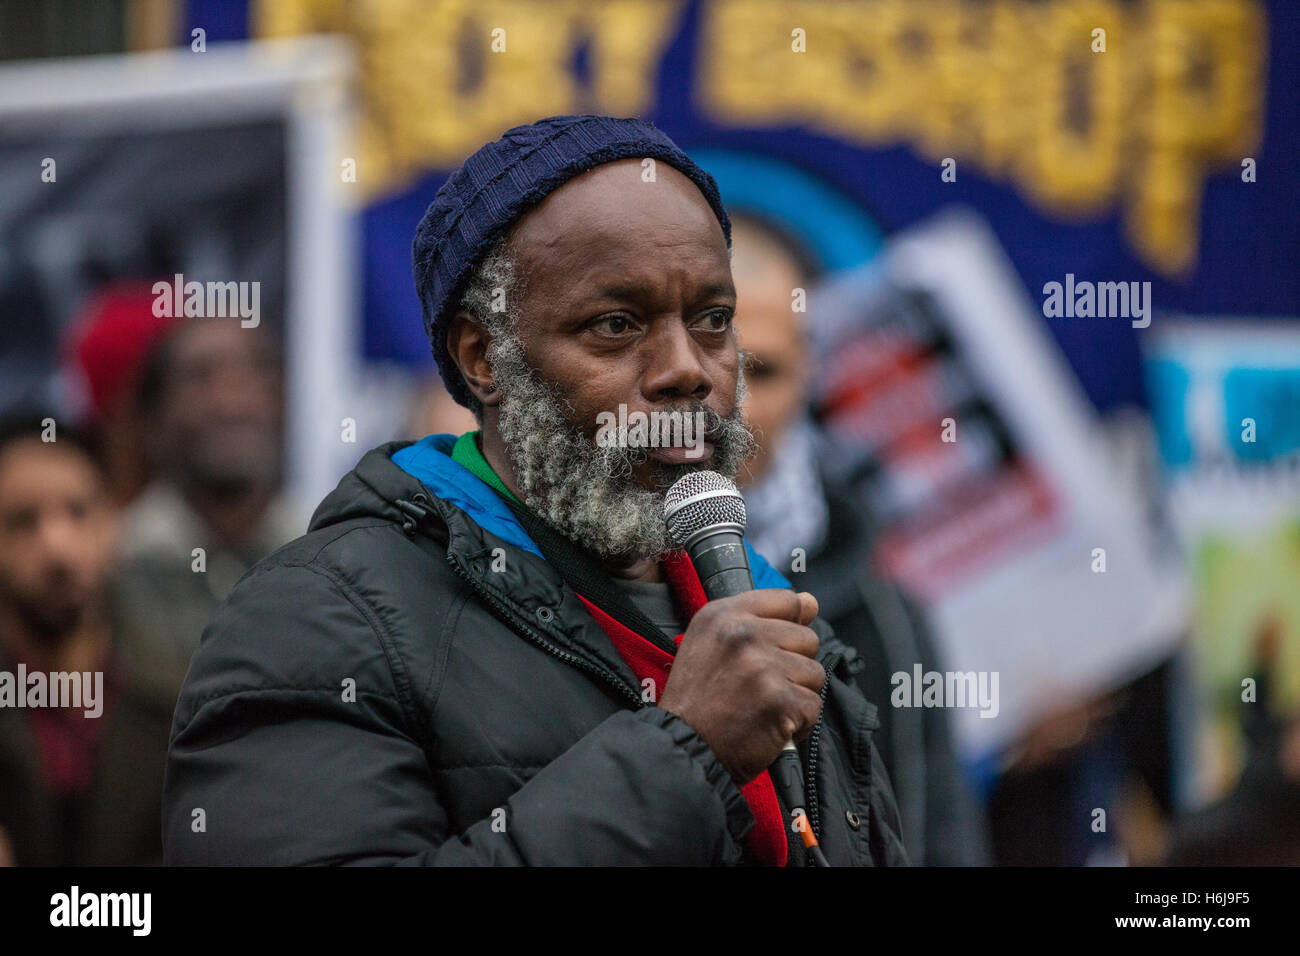 London, UK. 29th October, 2016. Brother Minka of the Pan African Community Forum addresses campaigners from the - Stock Image